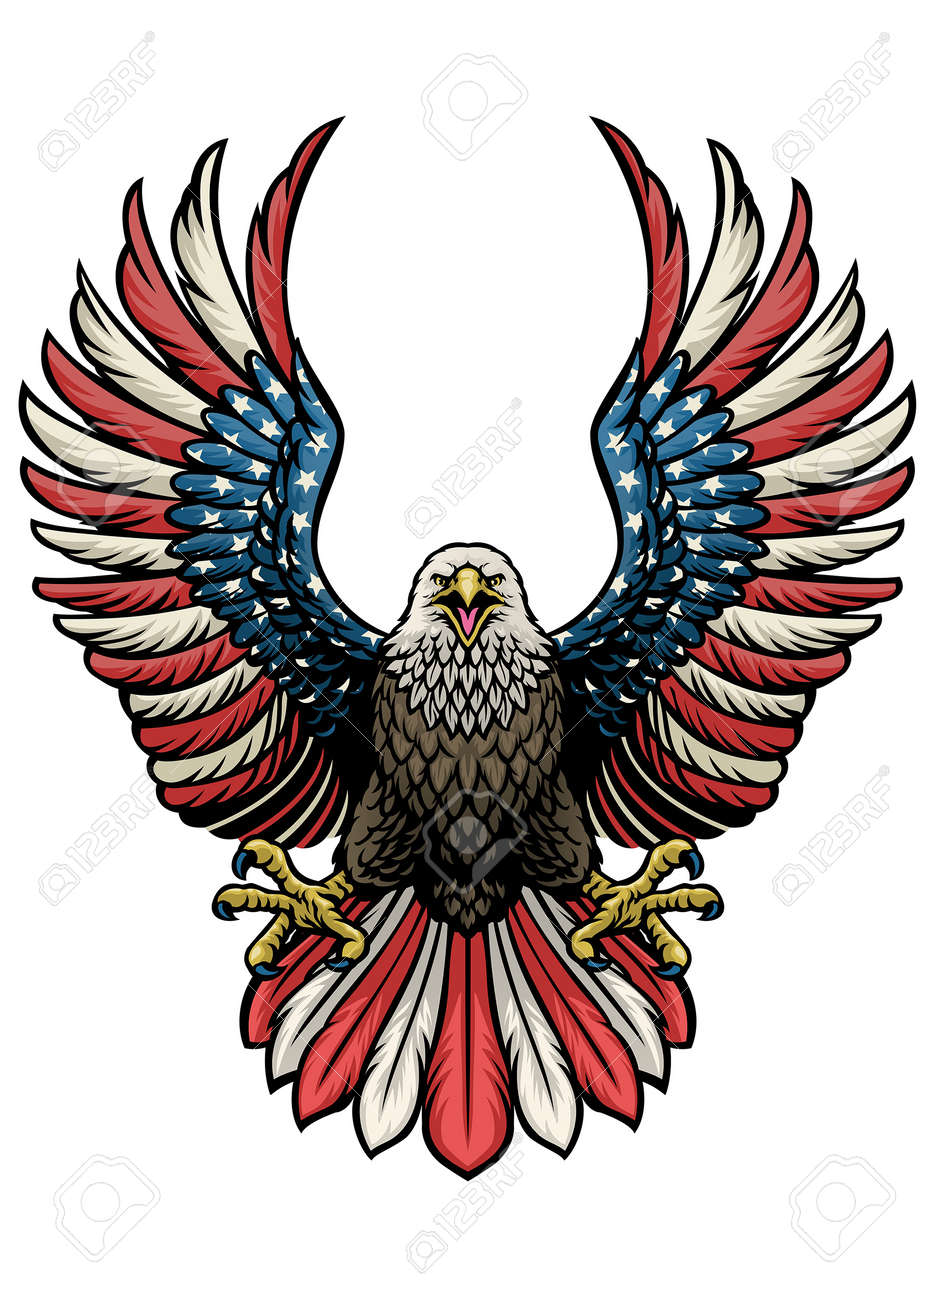 vector of eagle of america in hand drawn style - 171104018